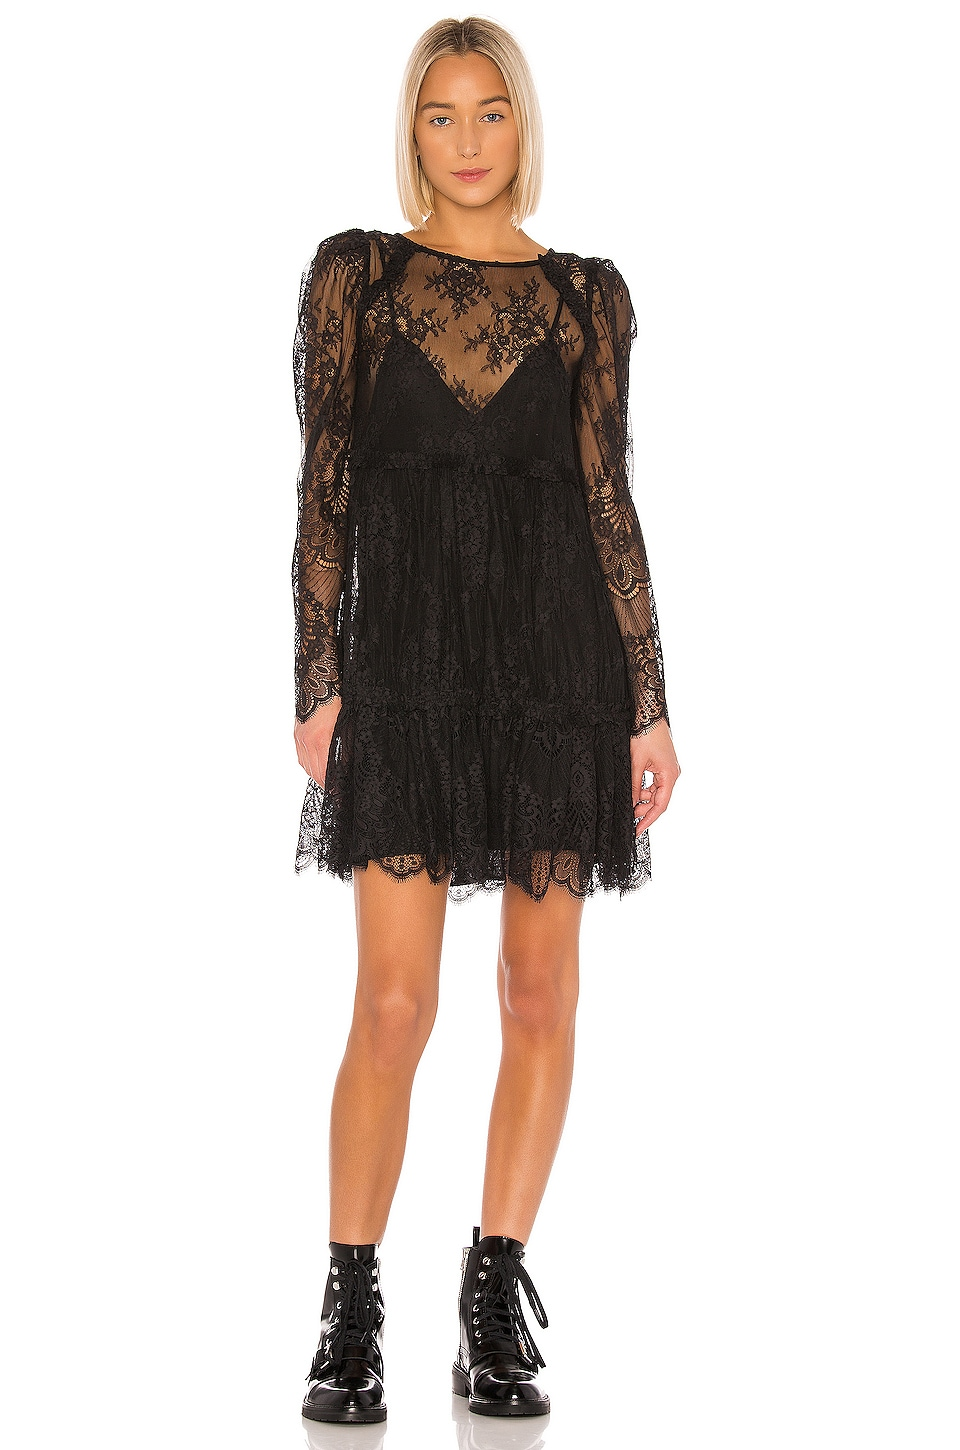 GRLFRND Reese Lace Mini Dress in Black